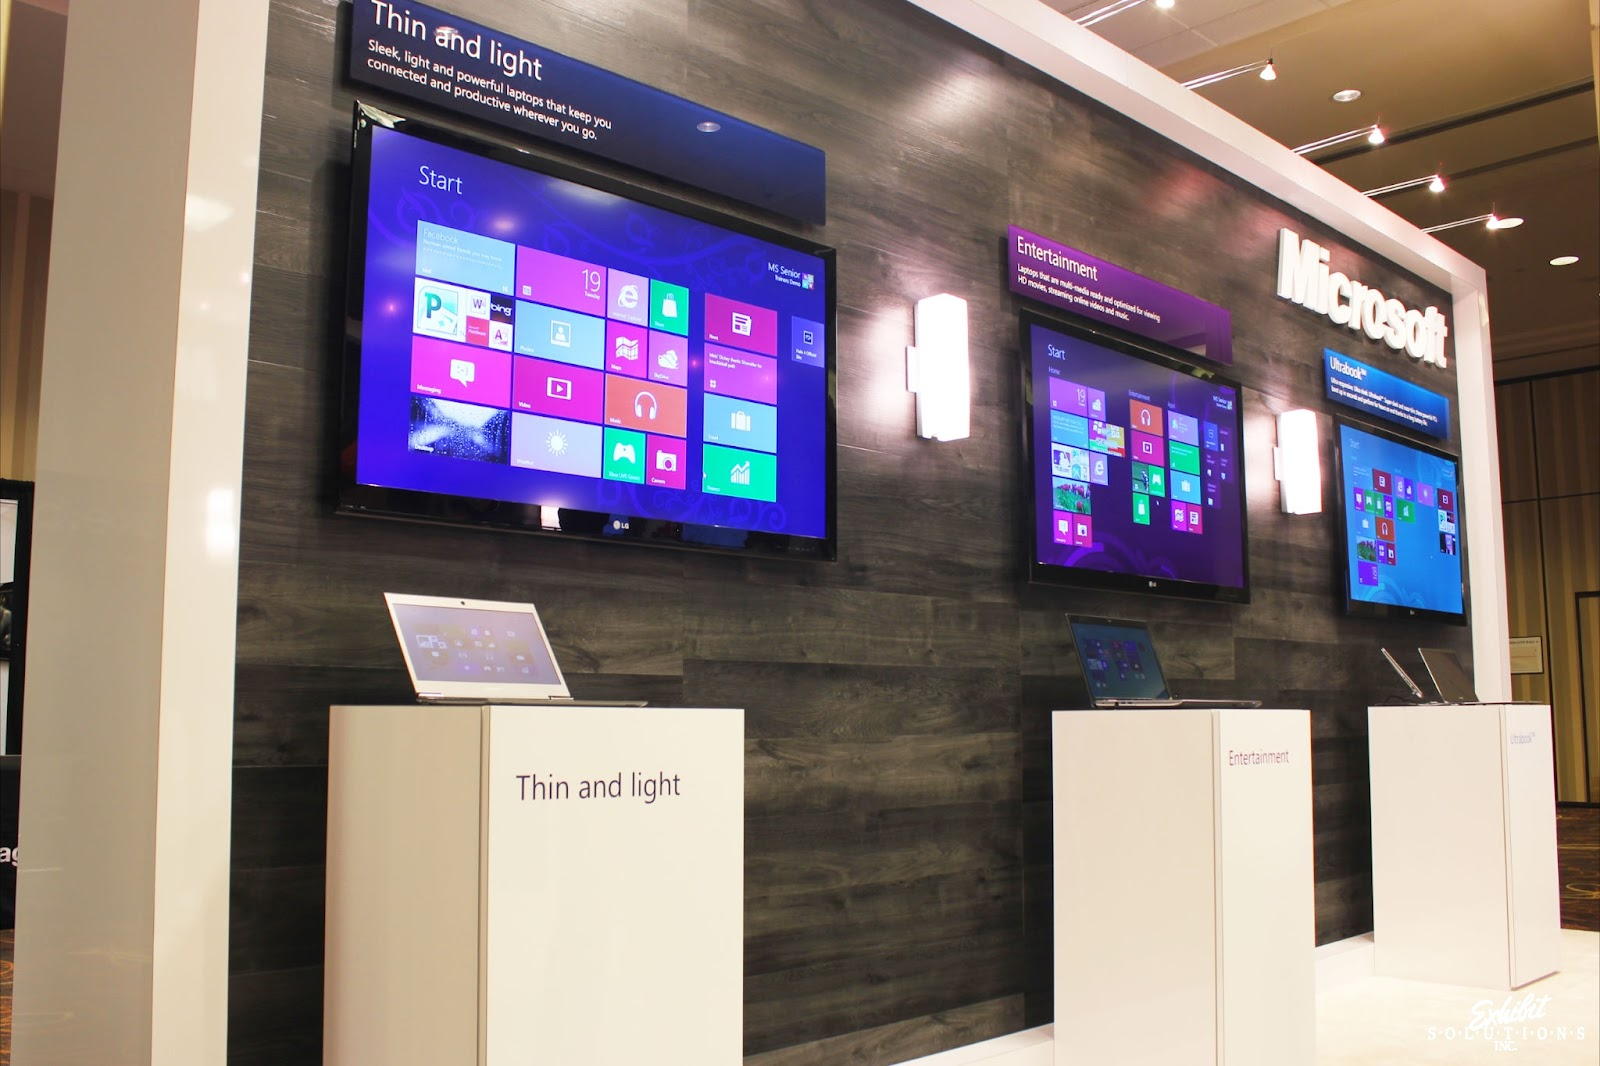 Exhibit Solutions - Microsoft - Future Shop Home Office Show 2012 - 02.JPG